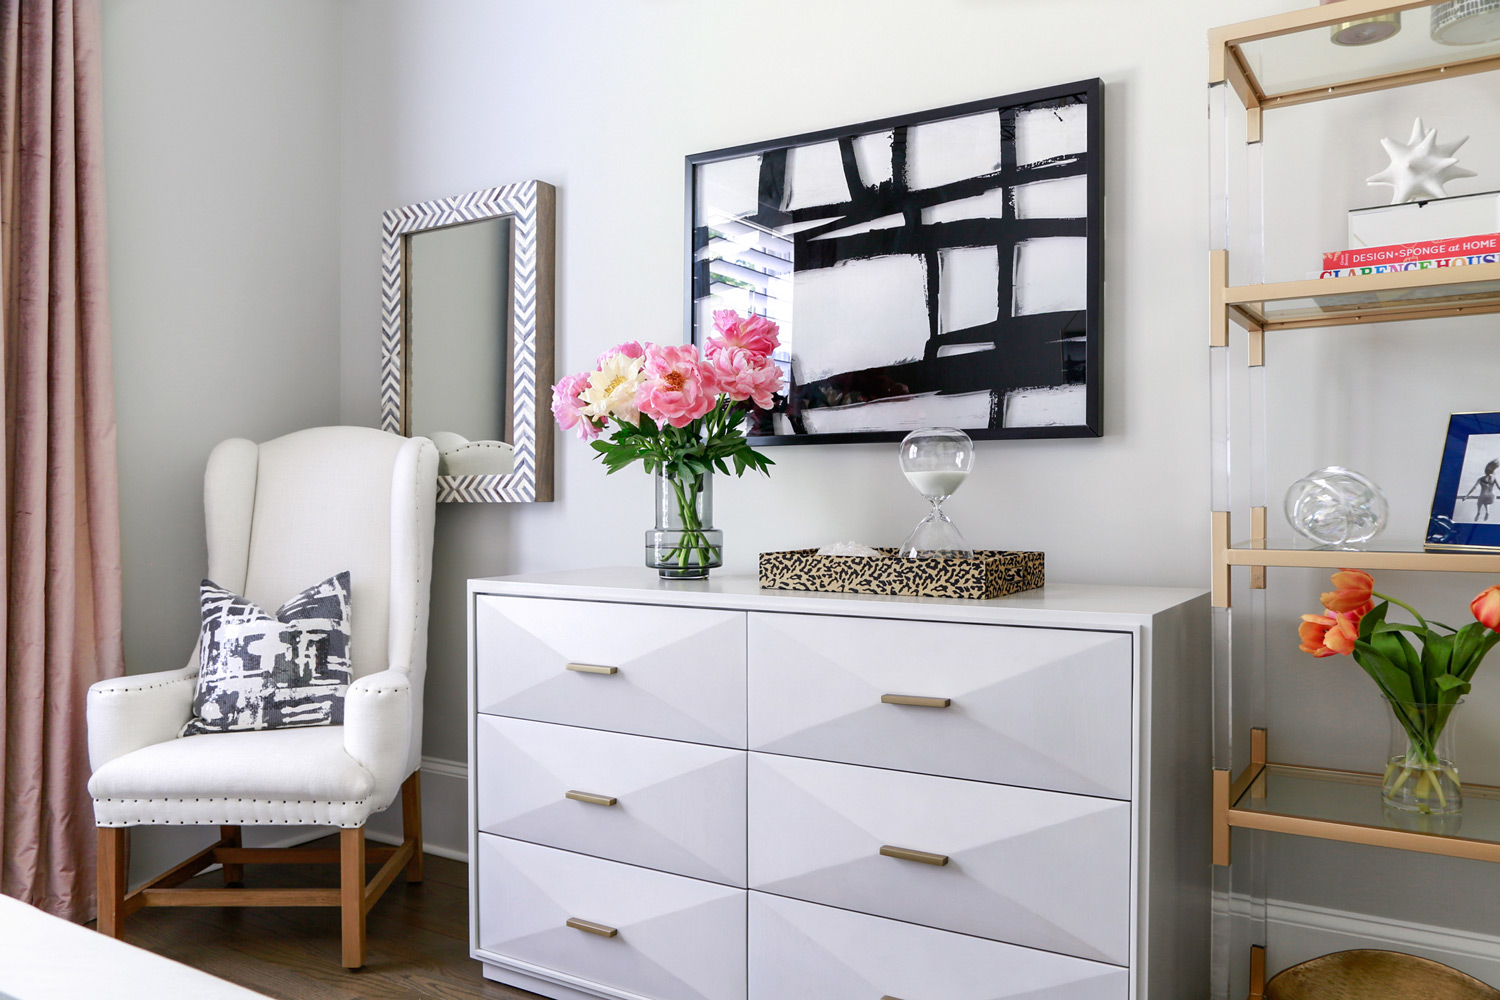 Contemporary guest bedroom with white dresser and glass shelves